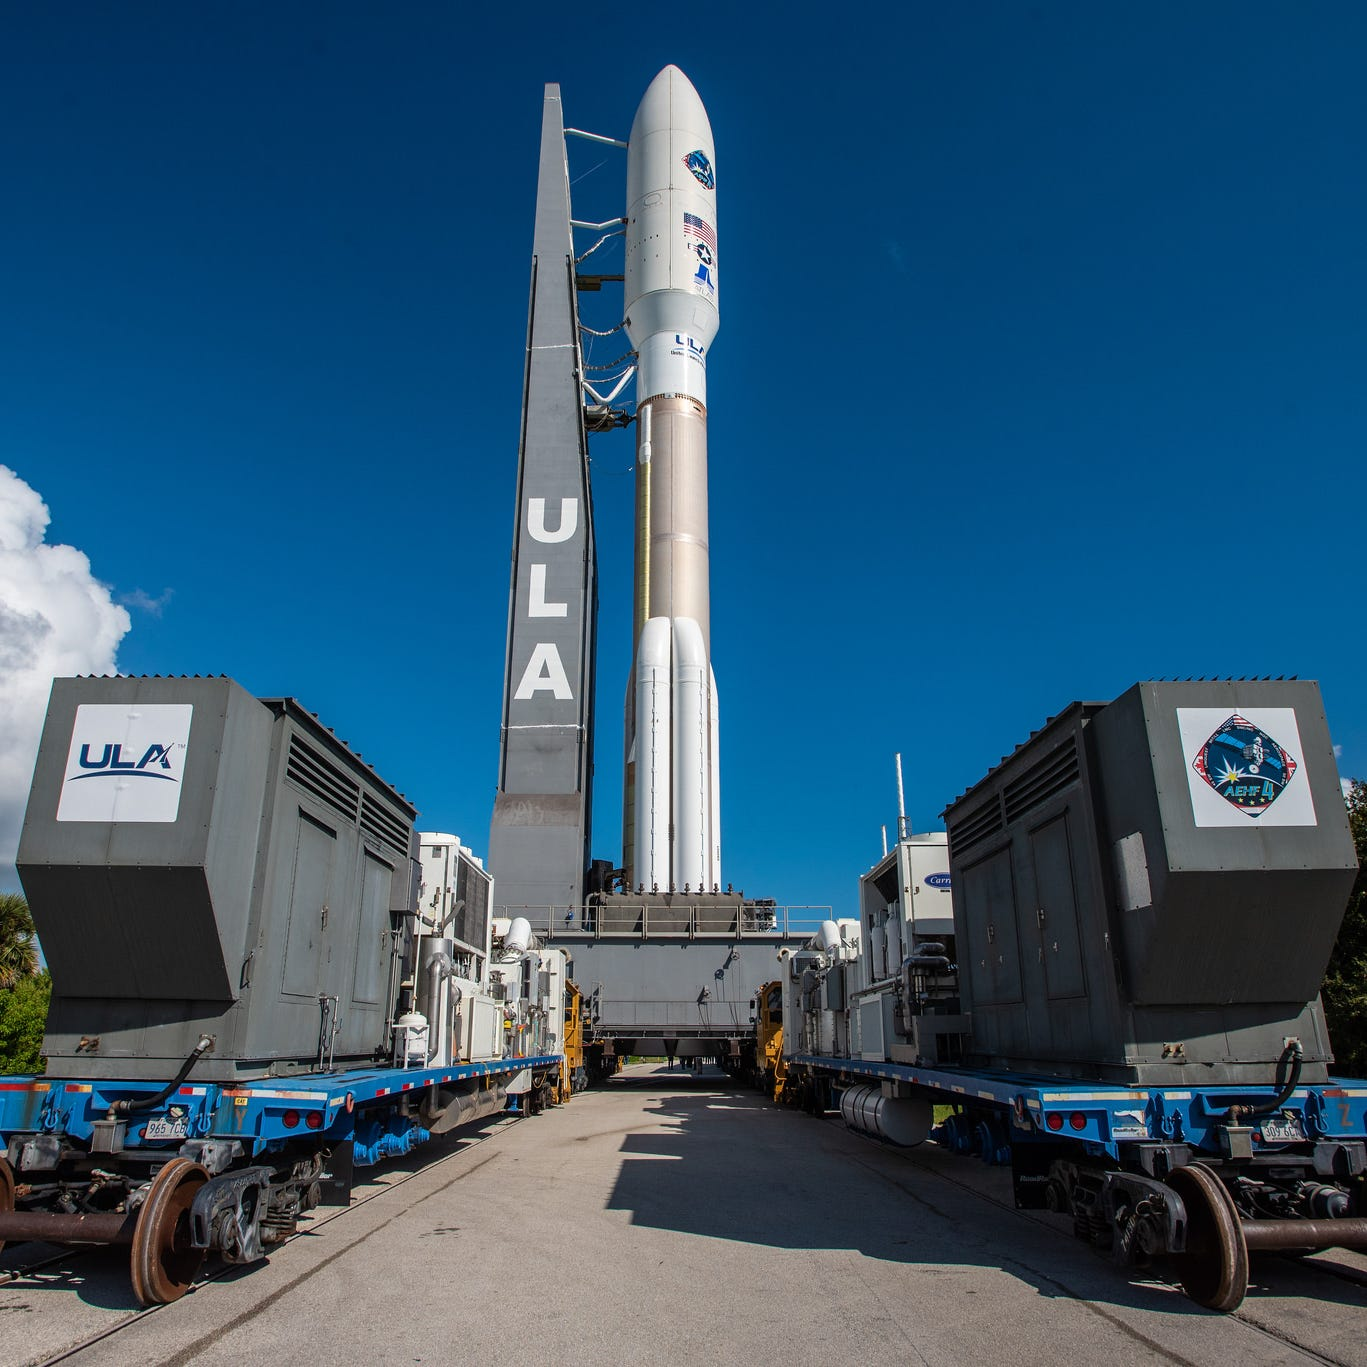 How to watch tonight's powerful Atlas V launch from Cape Canaveral